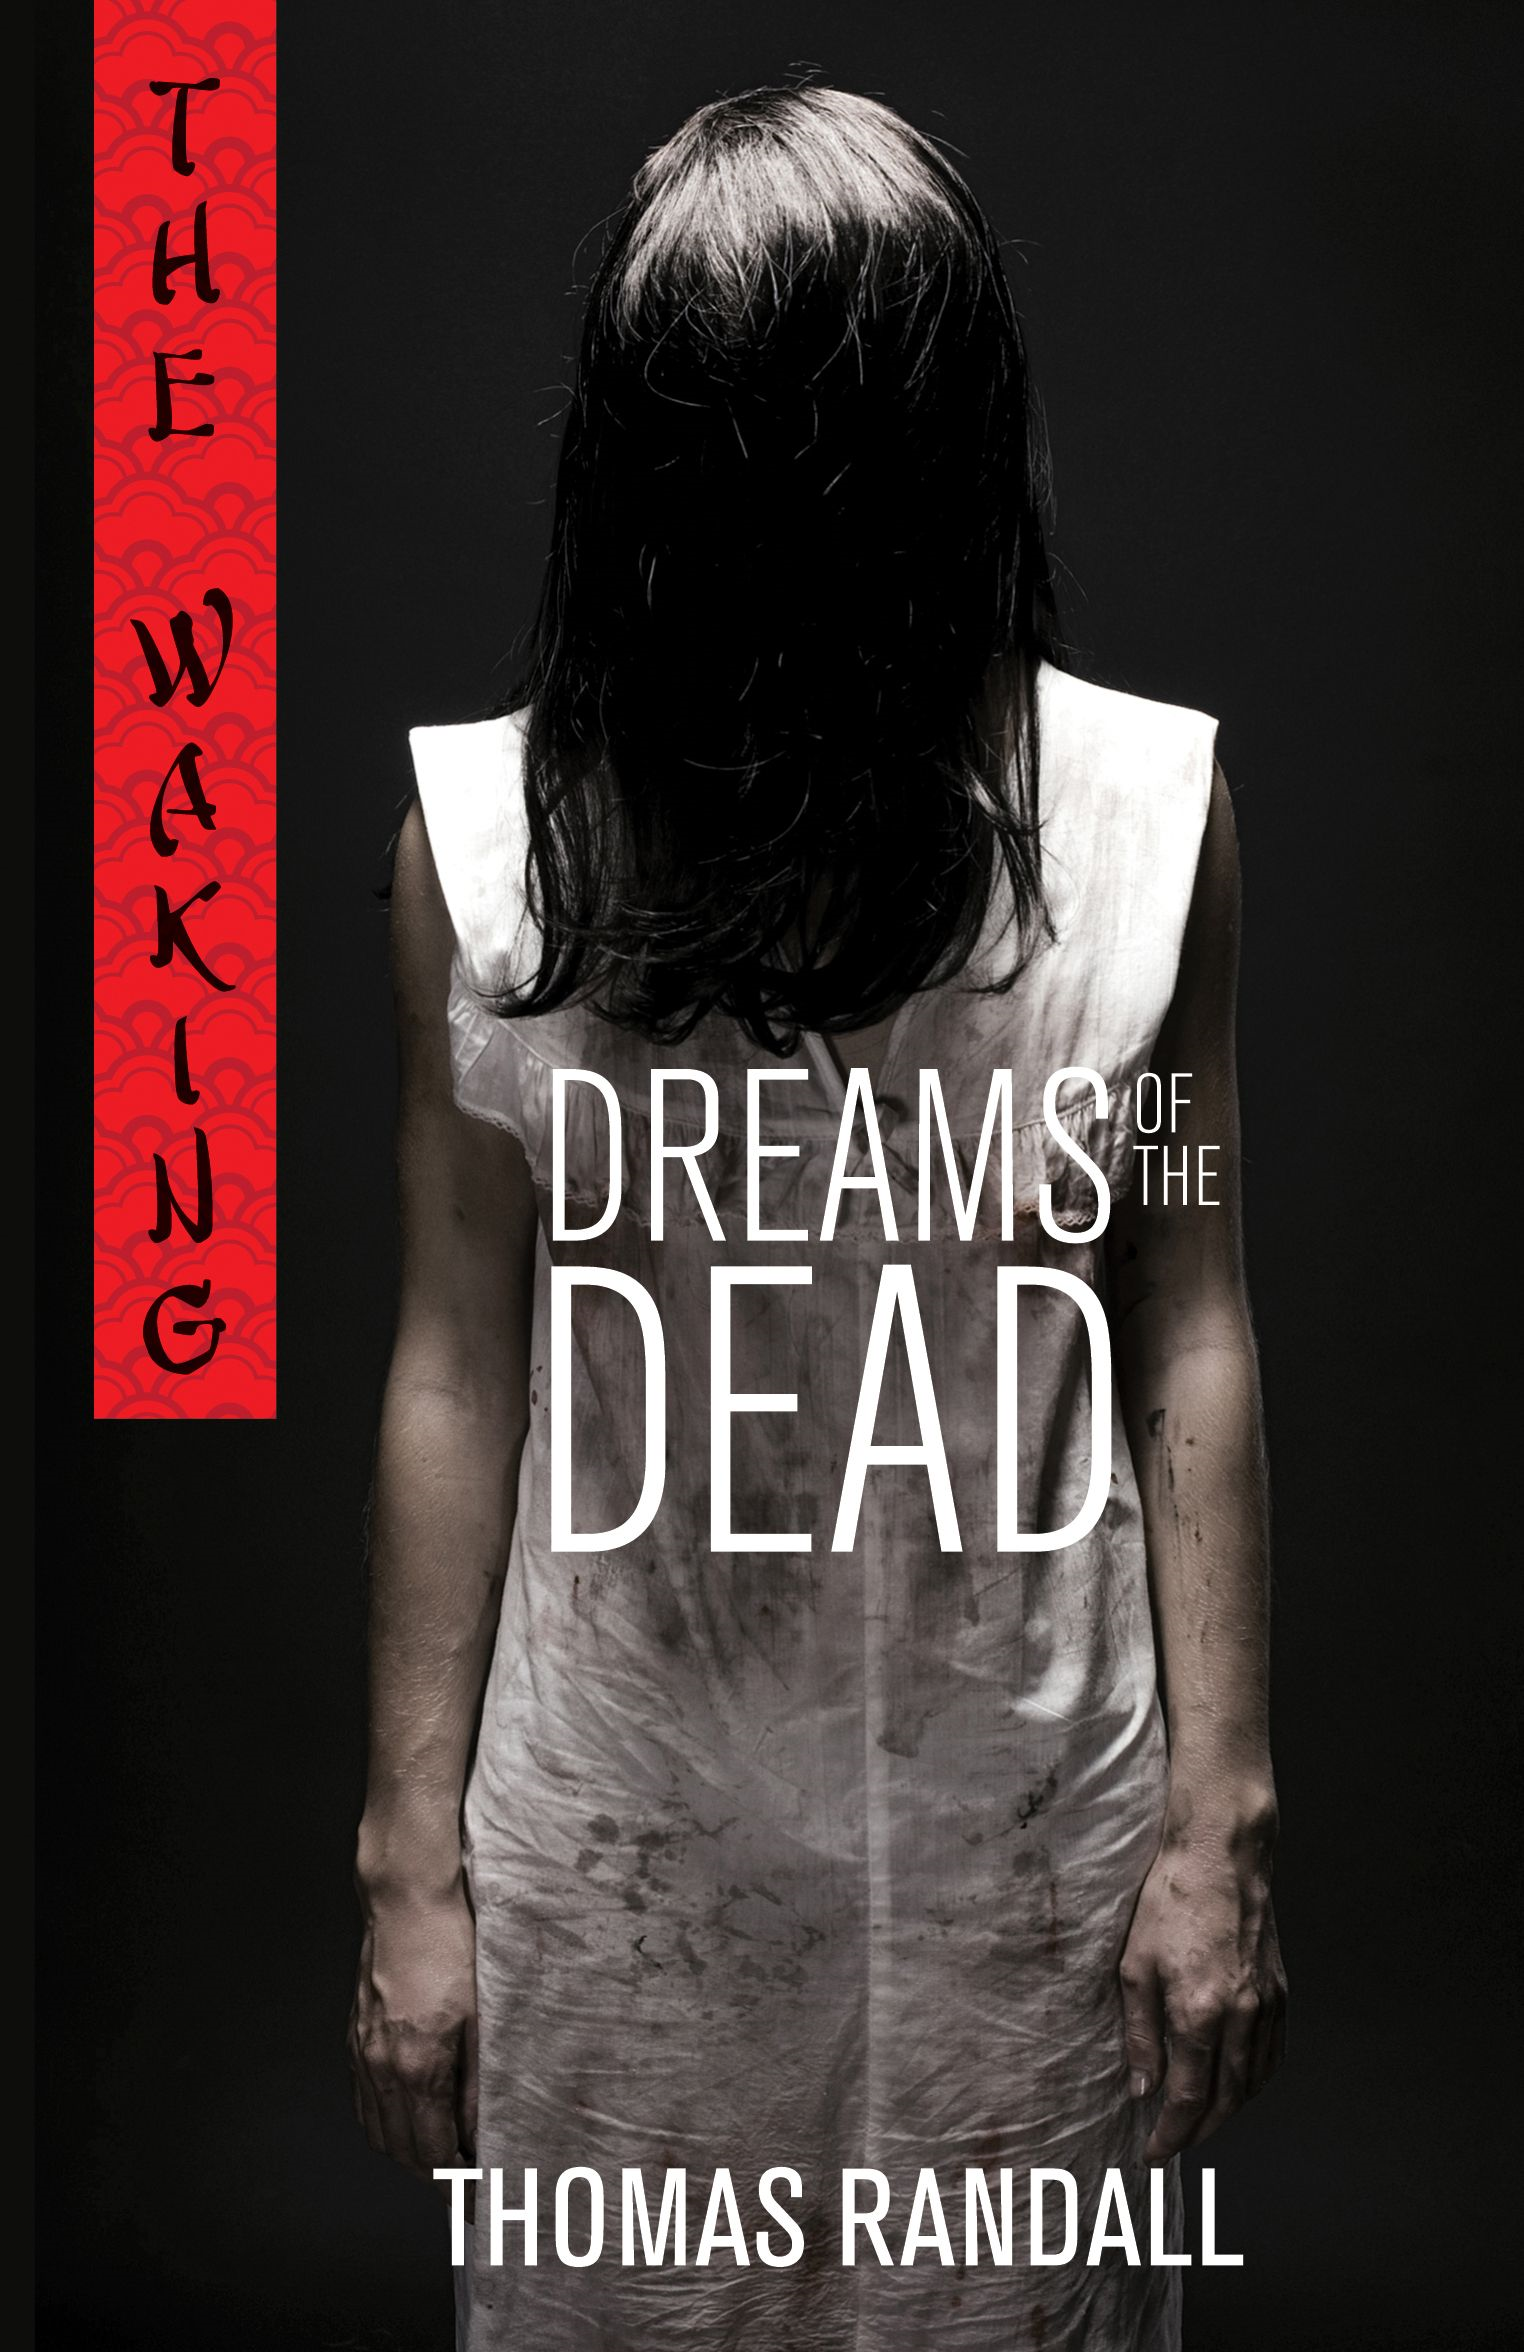 The Waking: Dreams of the Dead By: Thomas Randall